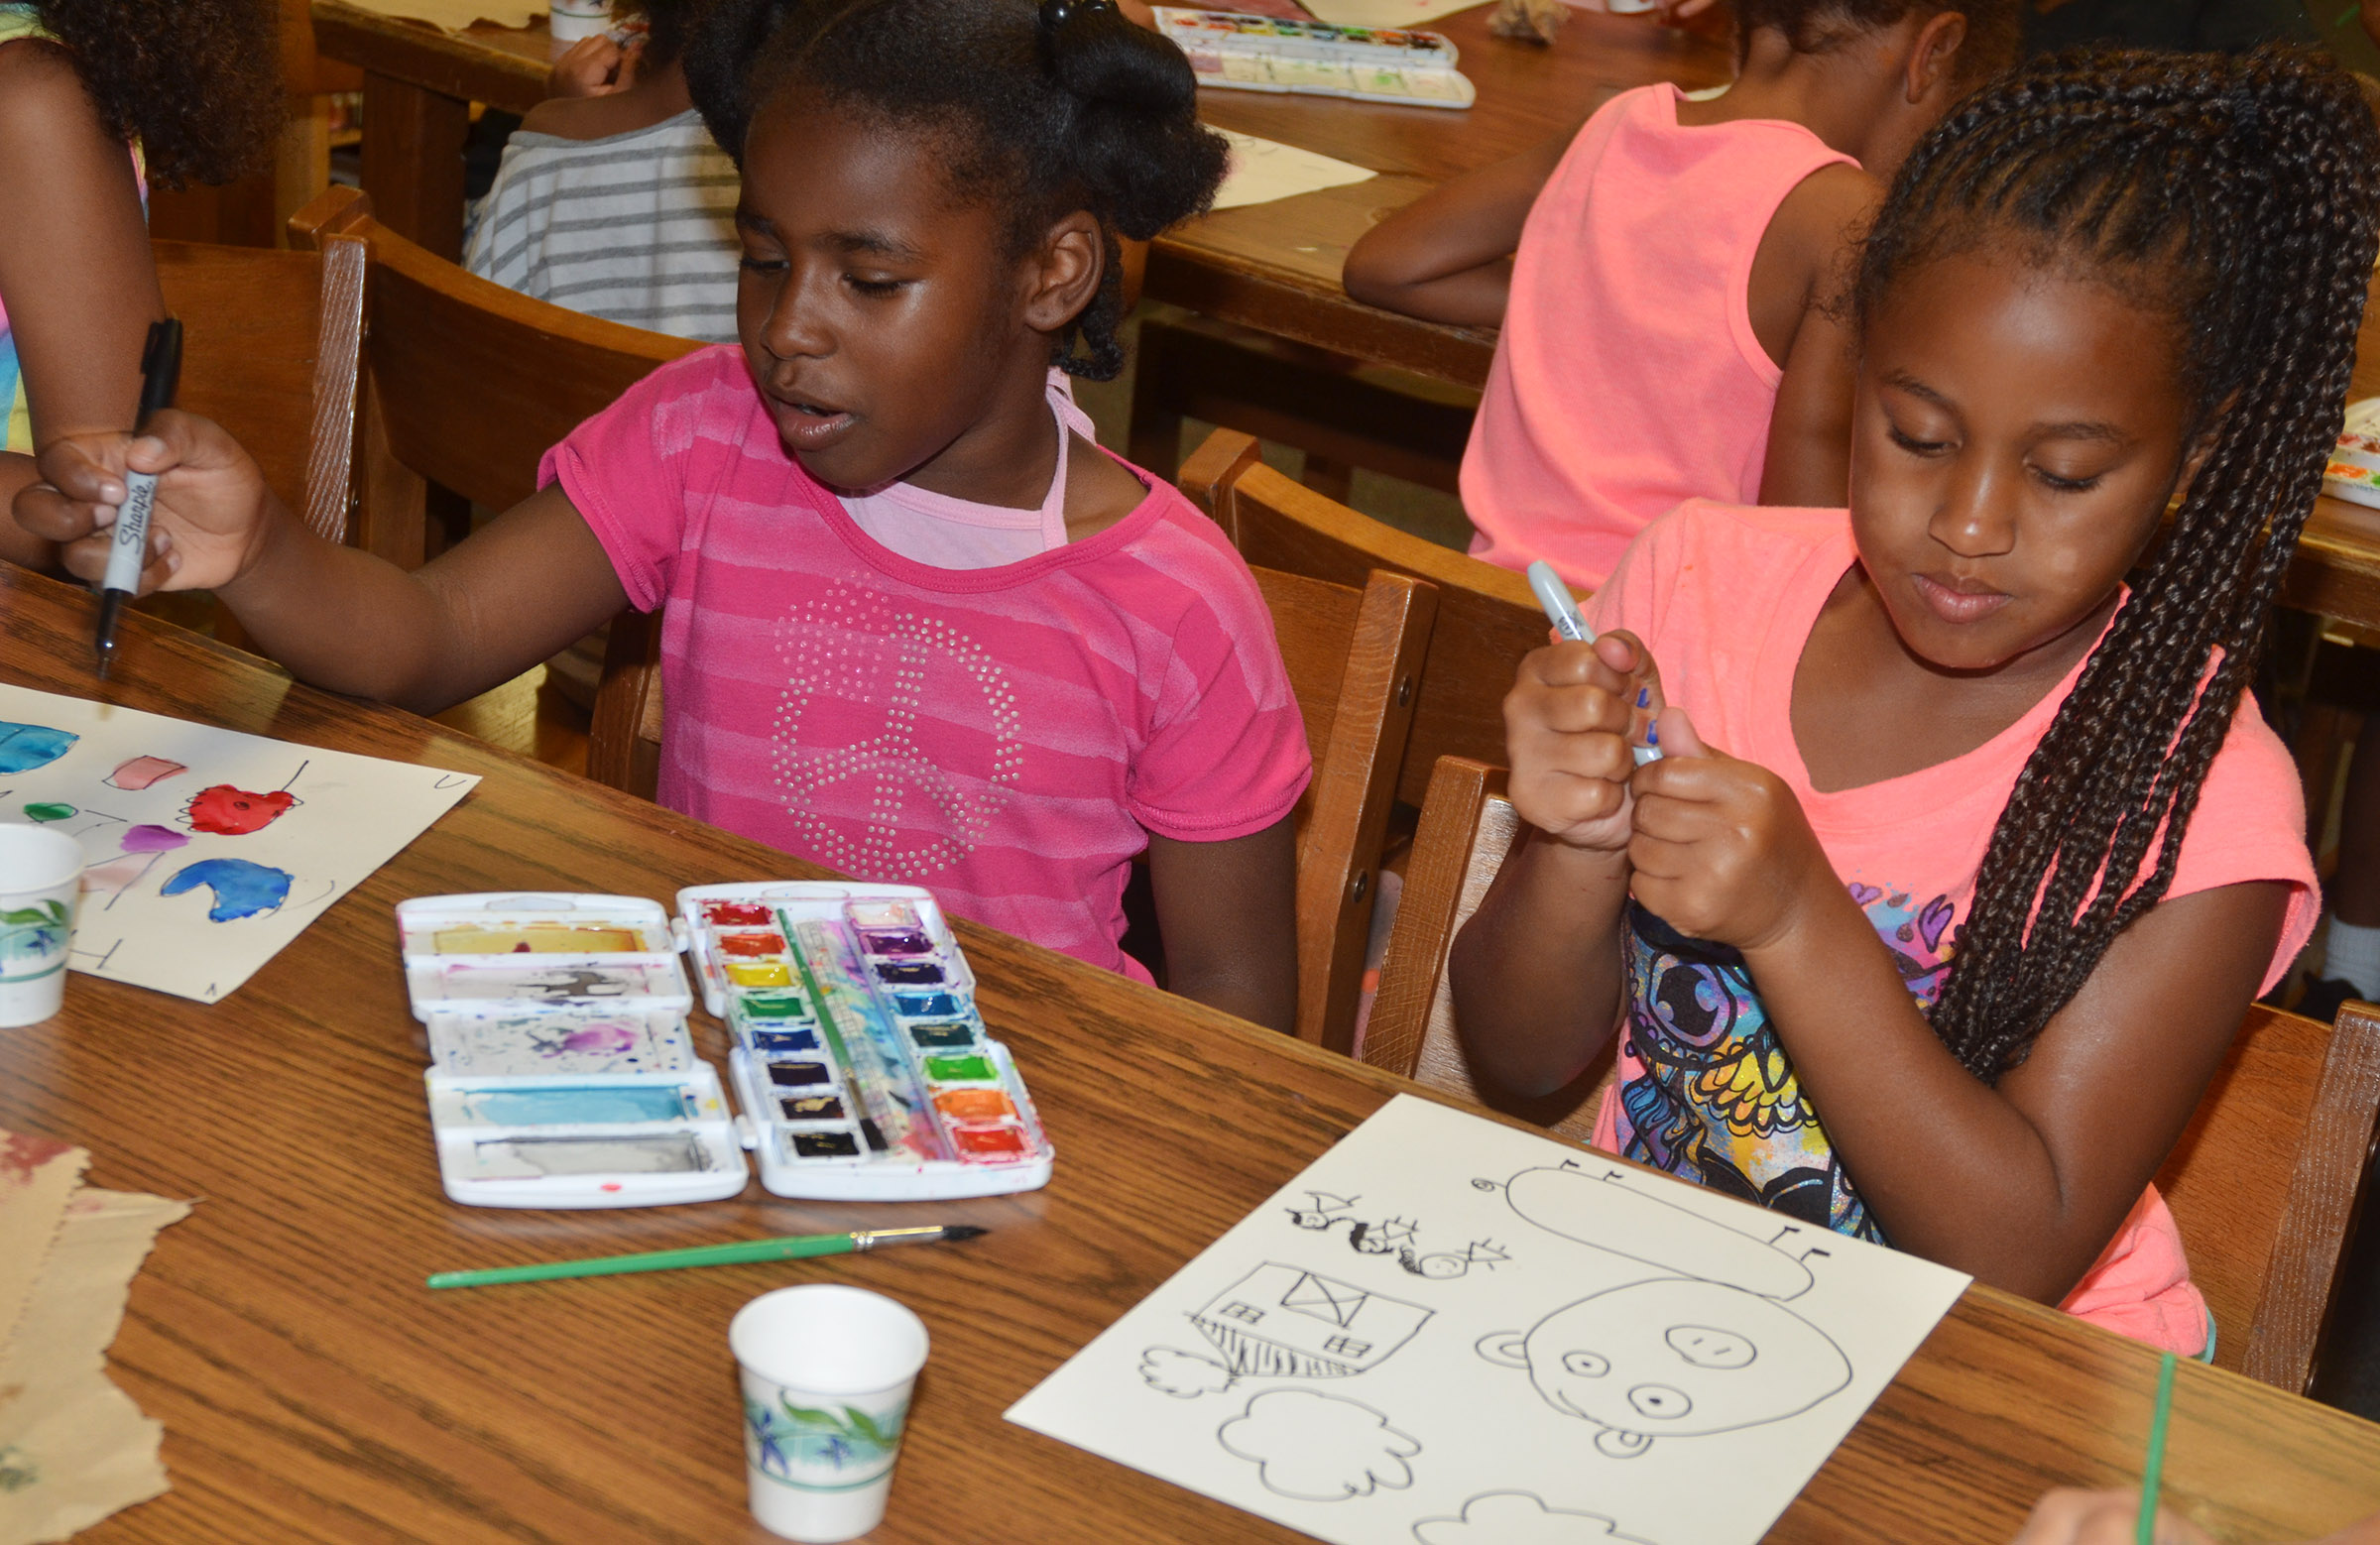 CES first-graders Destini Gholston, at left, and Kadance Ford paint.